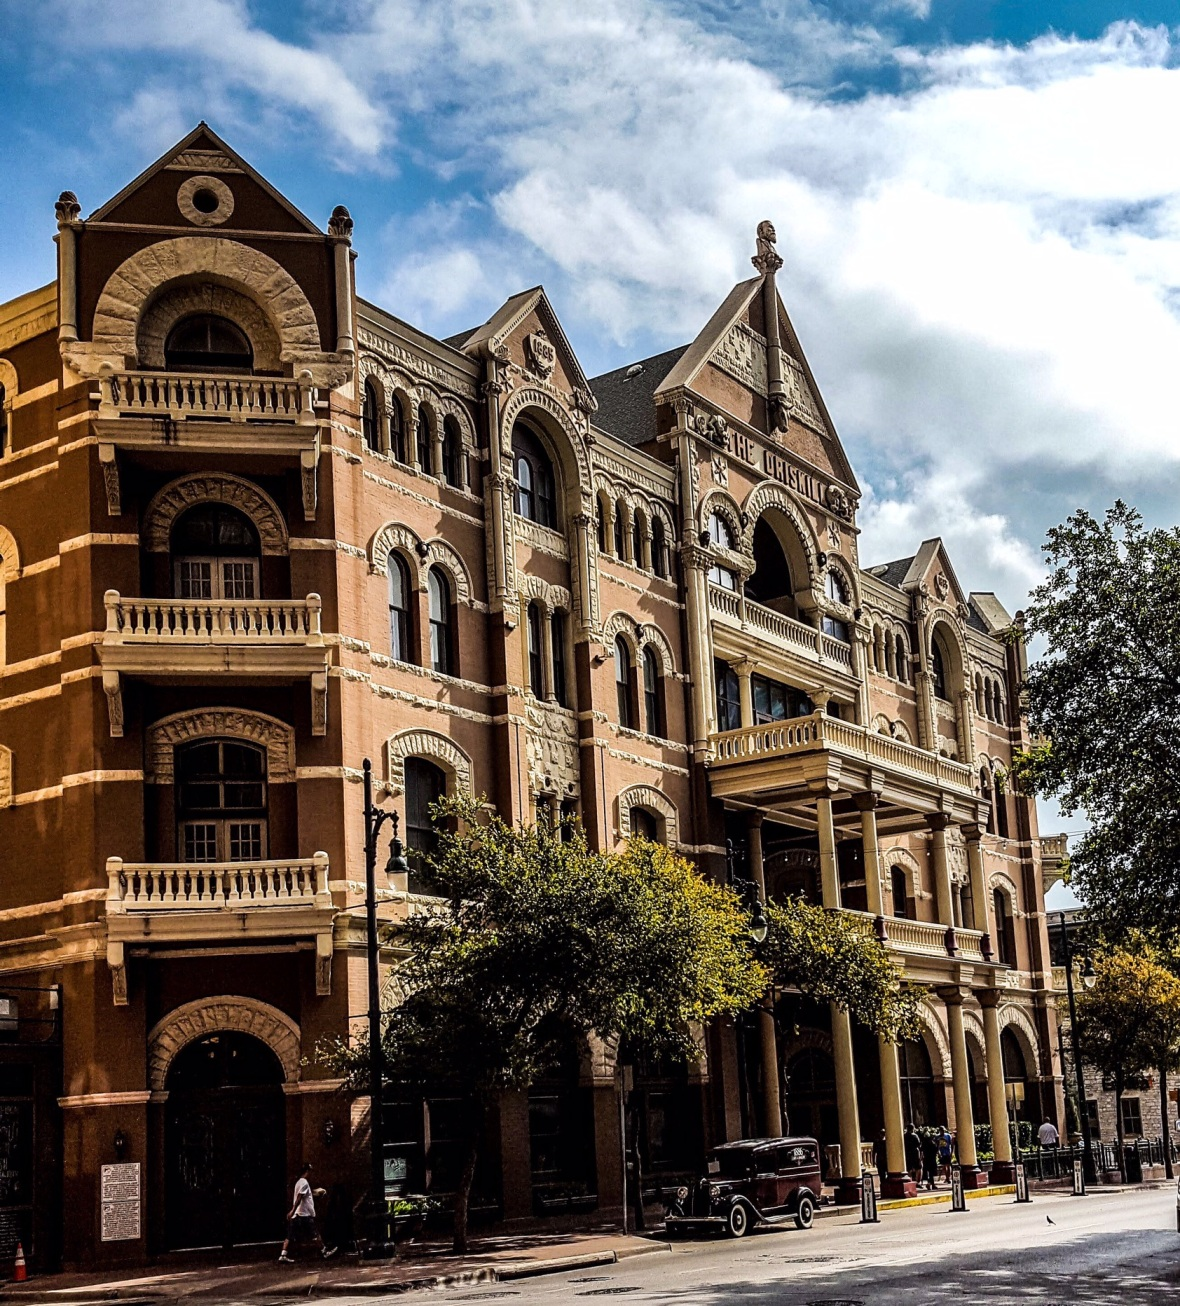 Places to visit in Austin the driskill austin hotels best places to travel alone in the us